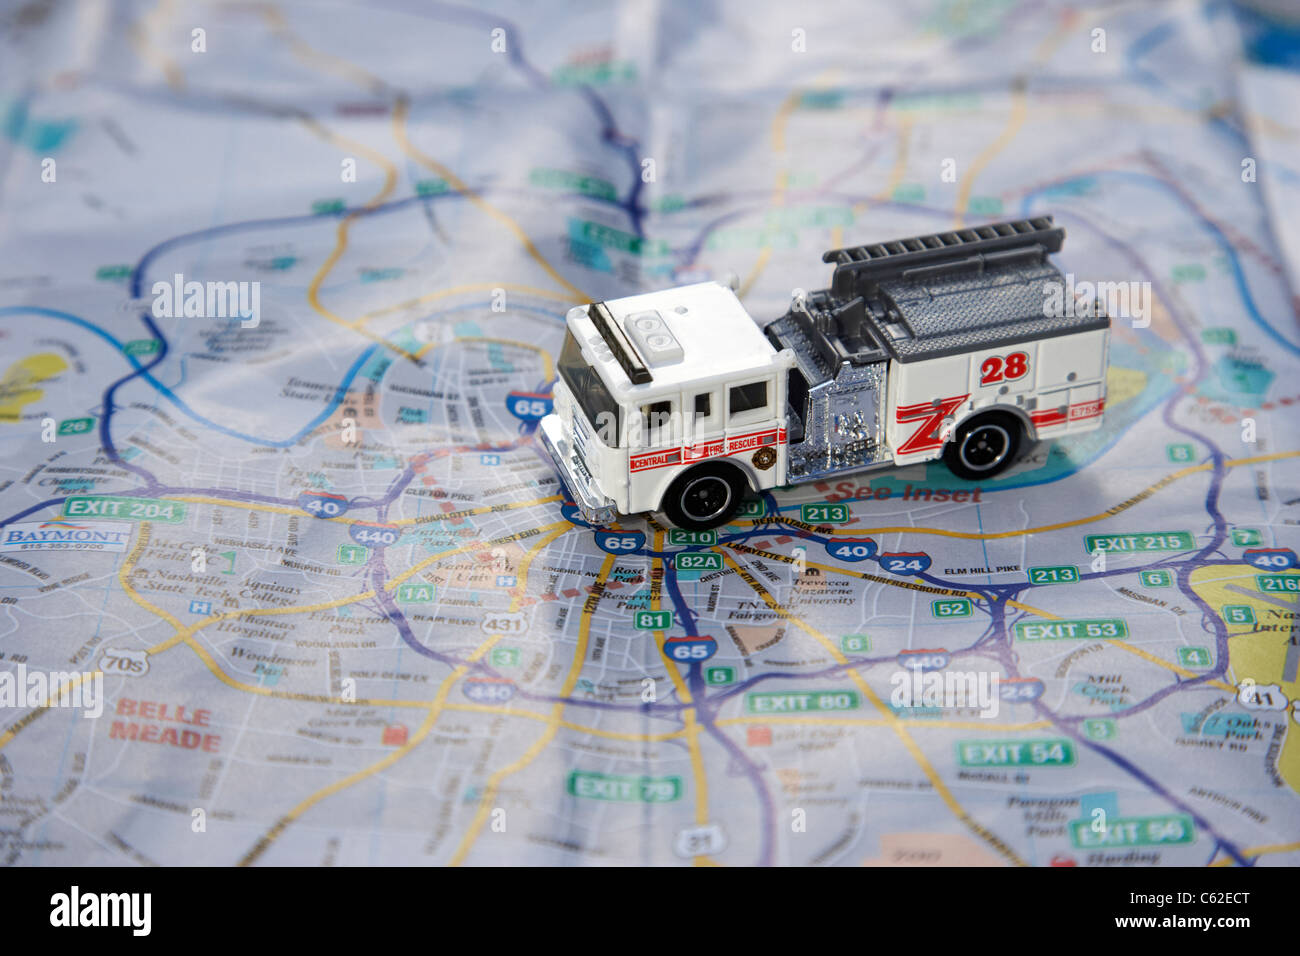 model fire truck on a city map of nashville in the usa - Stock Image